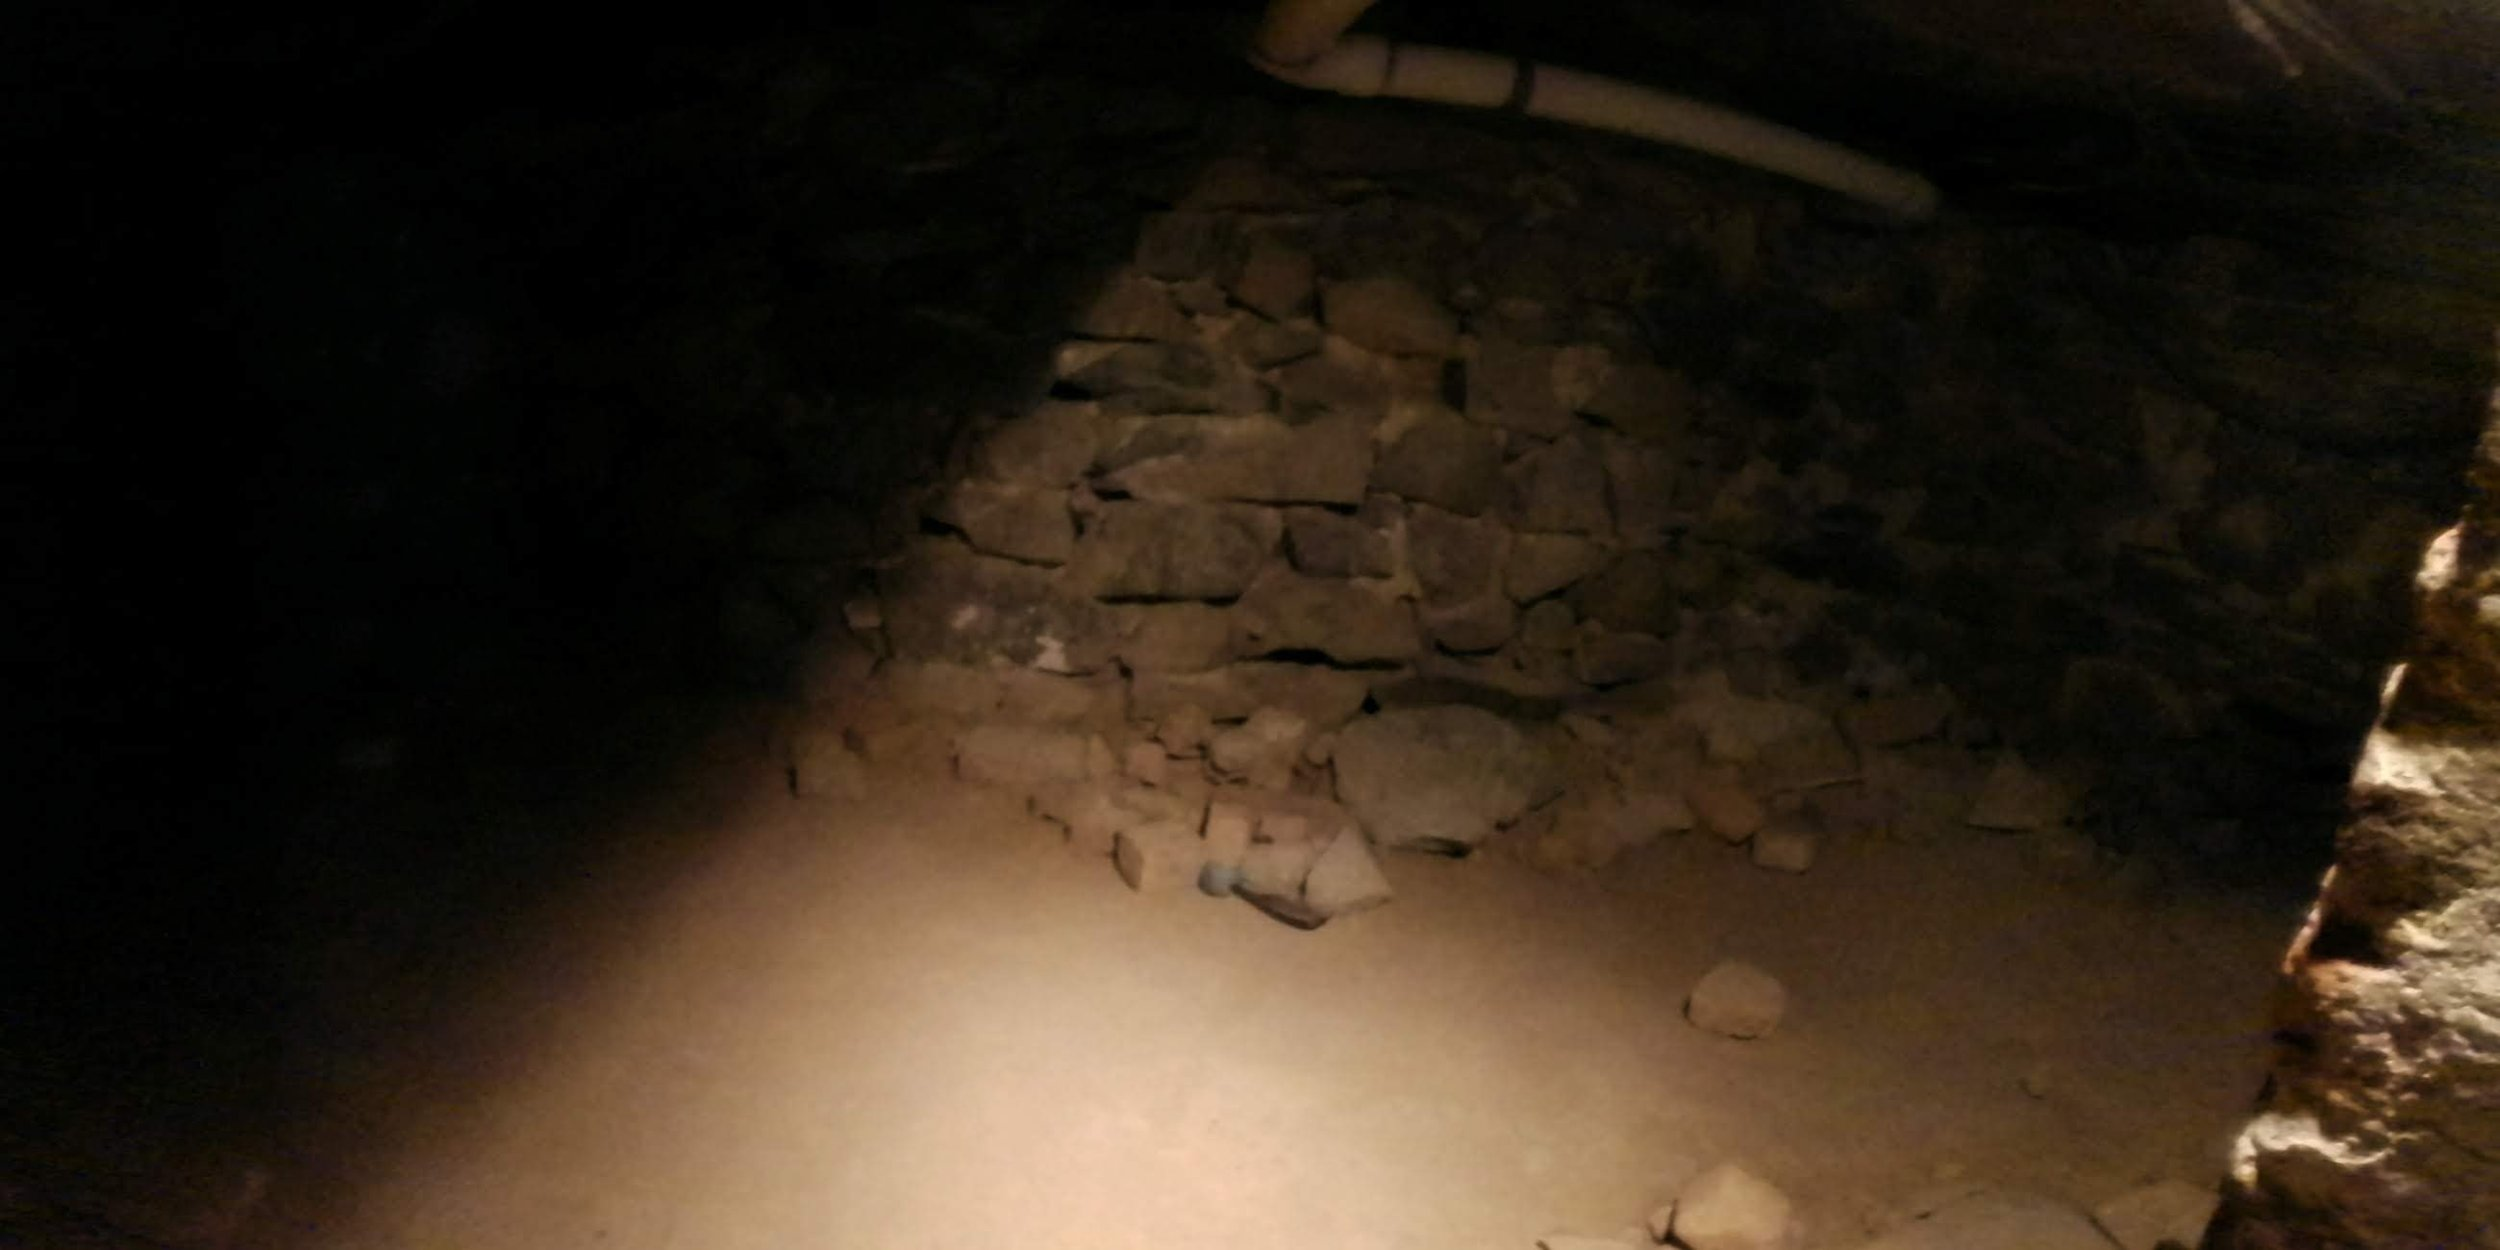 Photo from the basement with the black anomaly in the upper left corner.